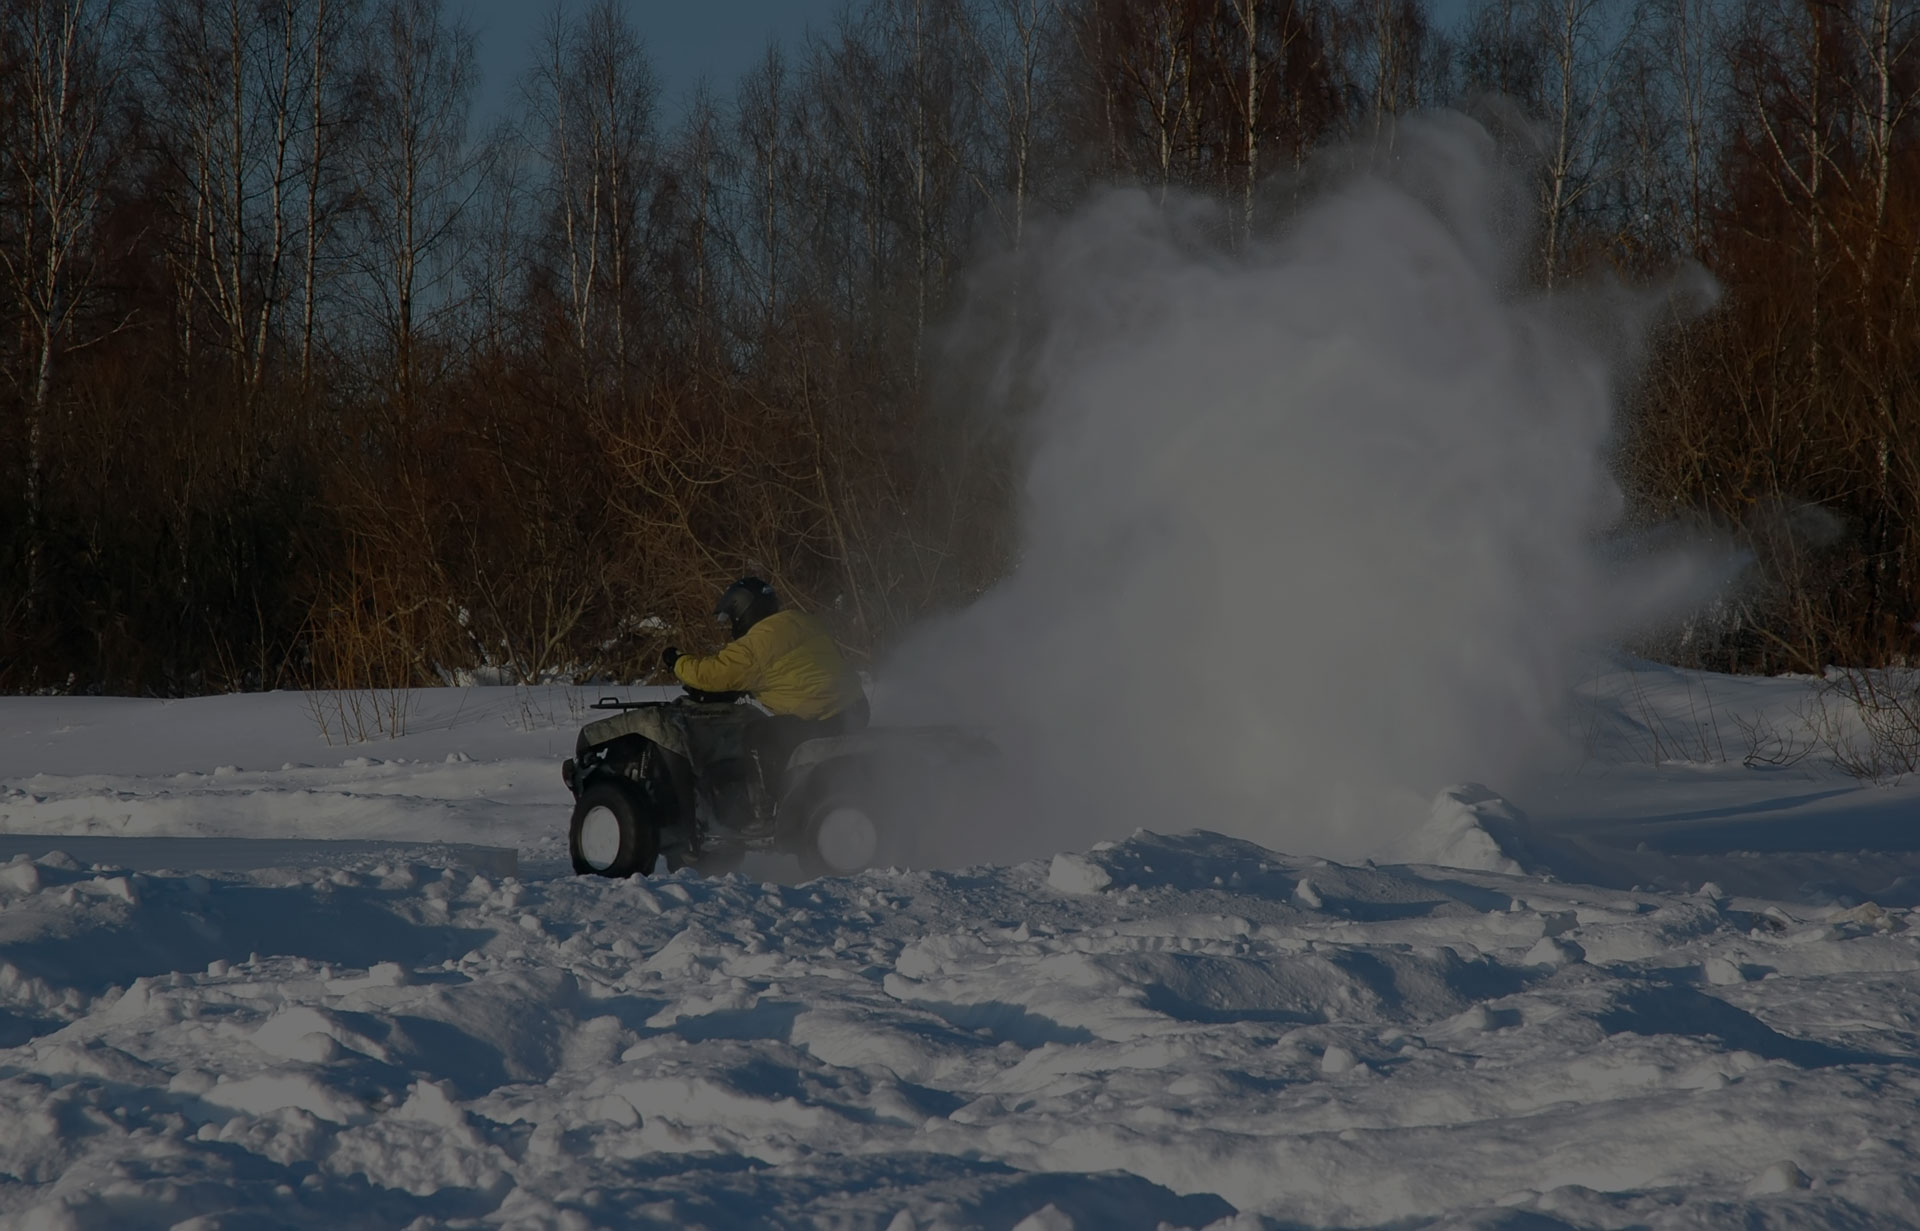 Atv bike on snow